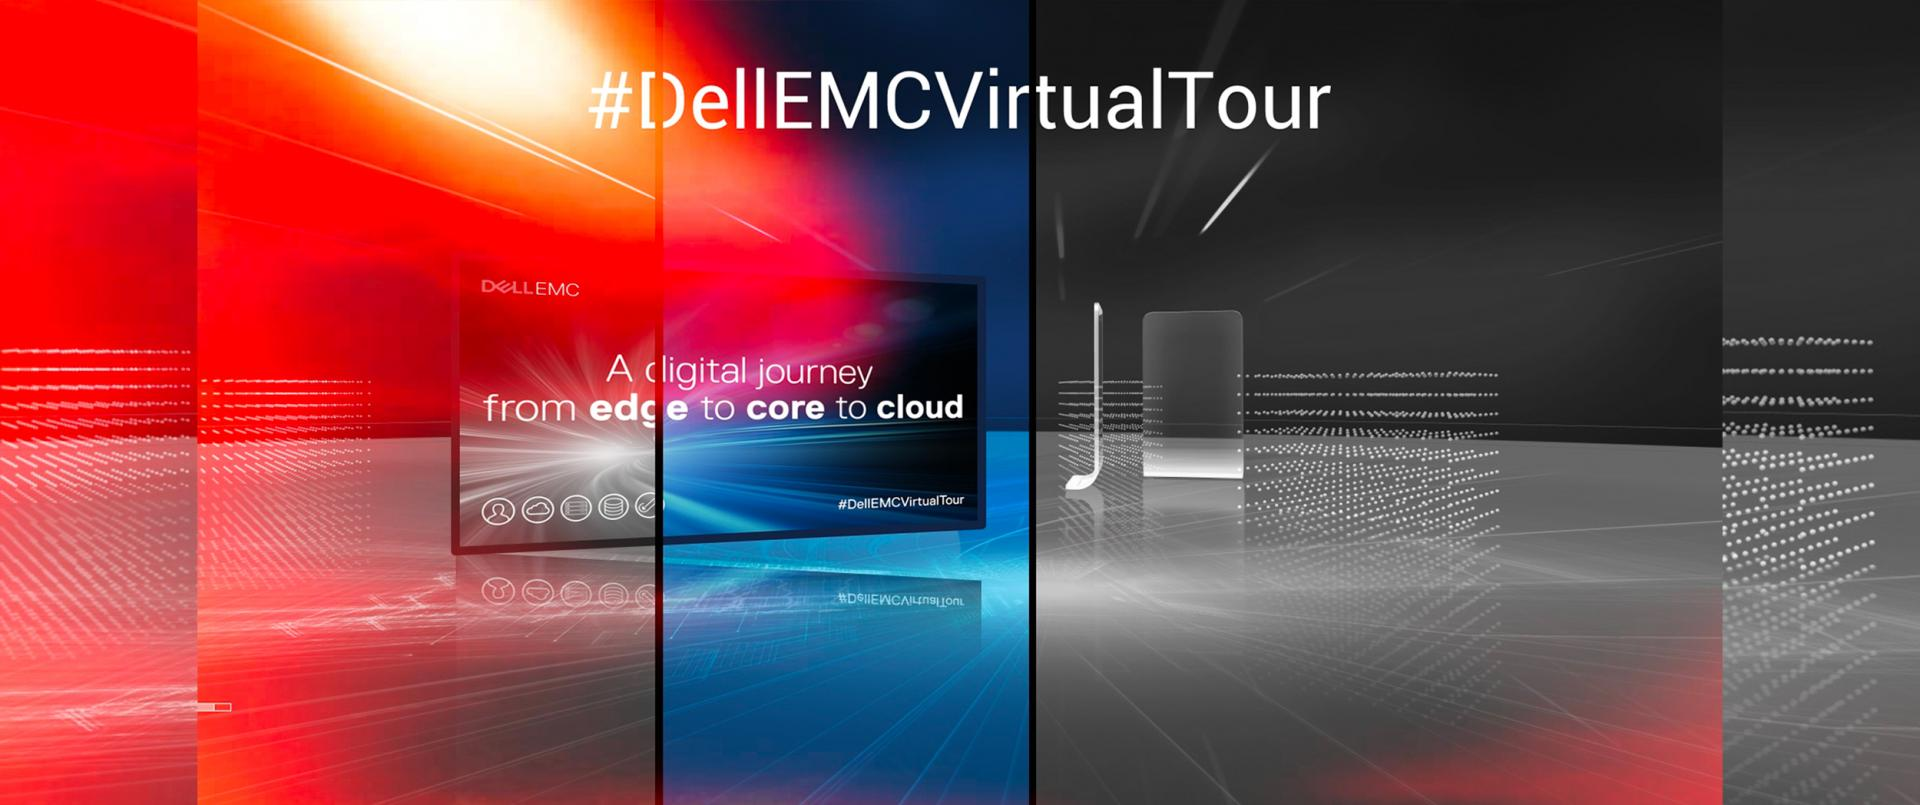 Software Defined data Center Streaming Live -Dell EMC Virtual Tour